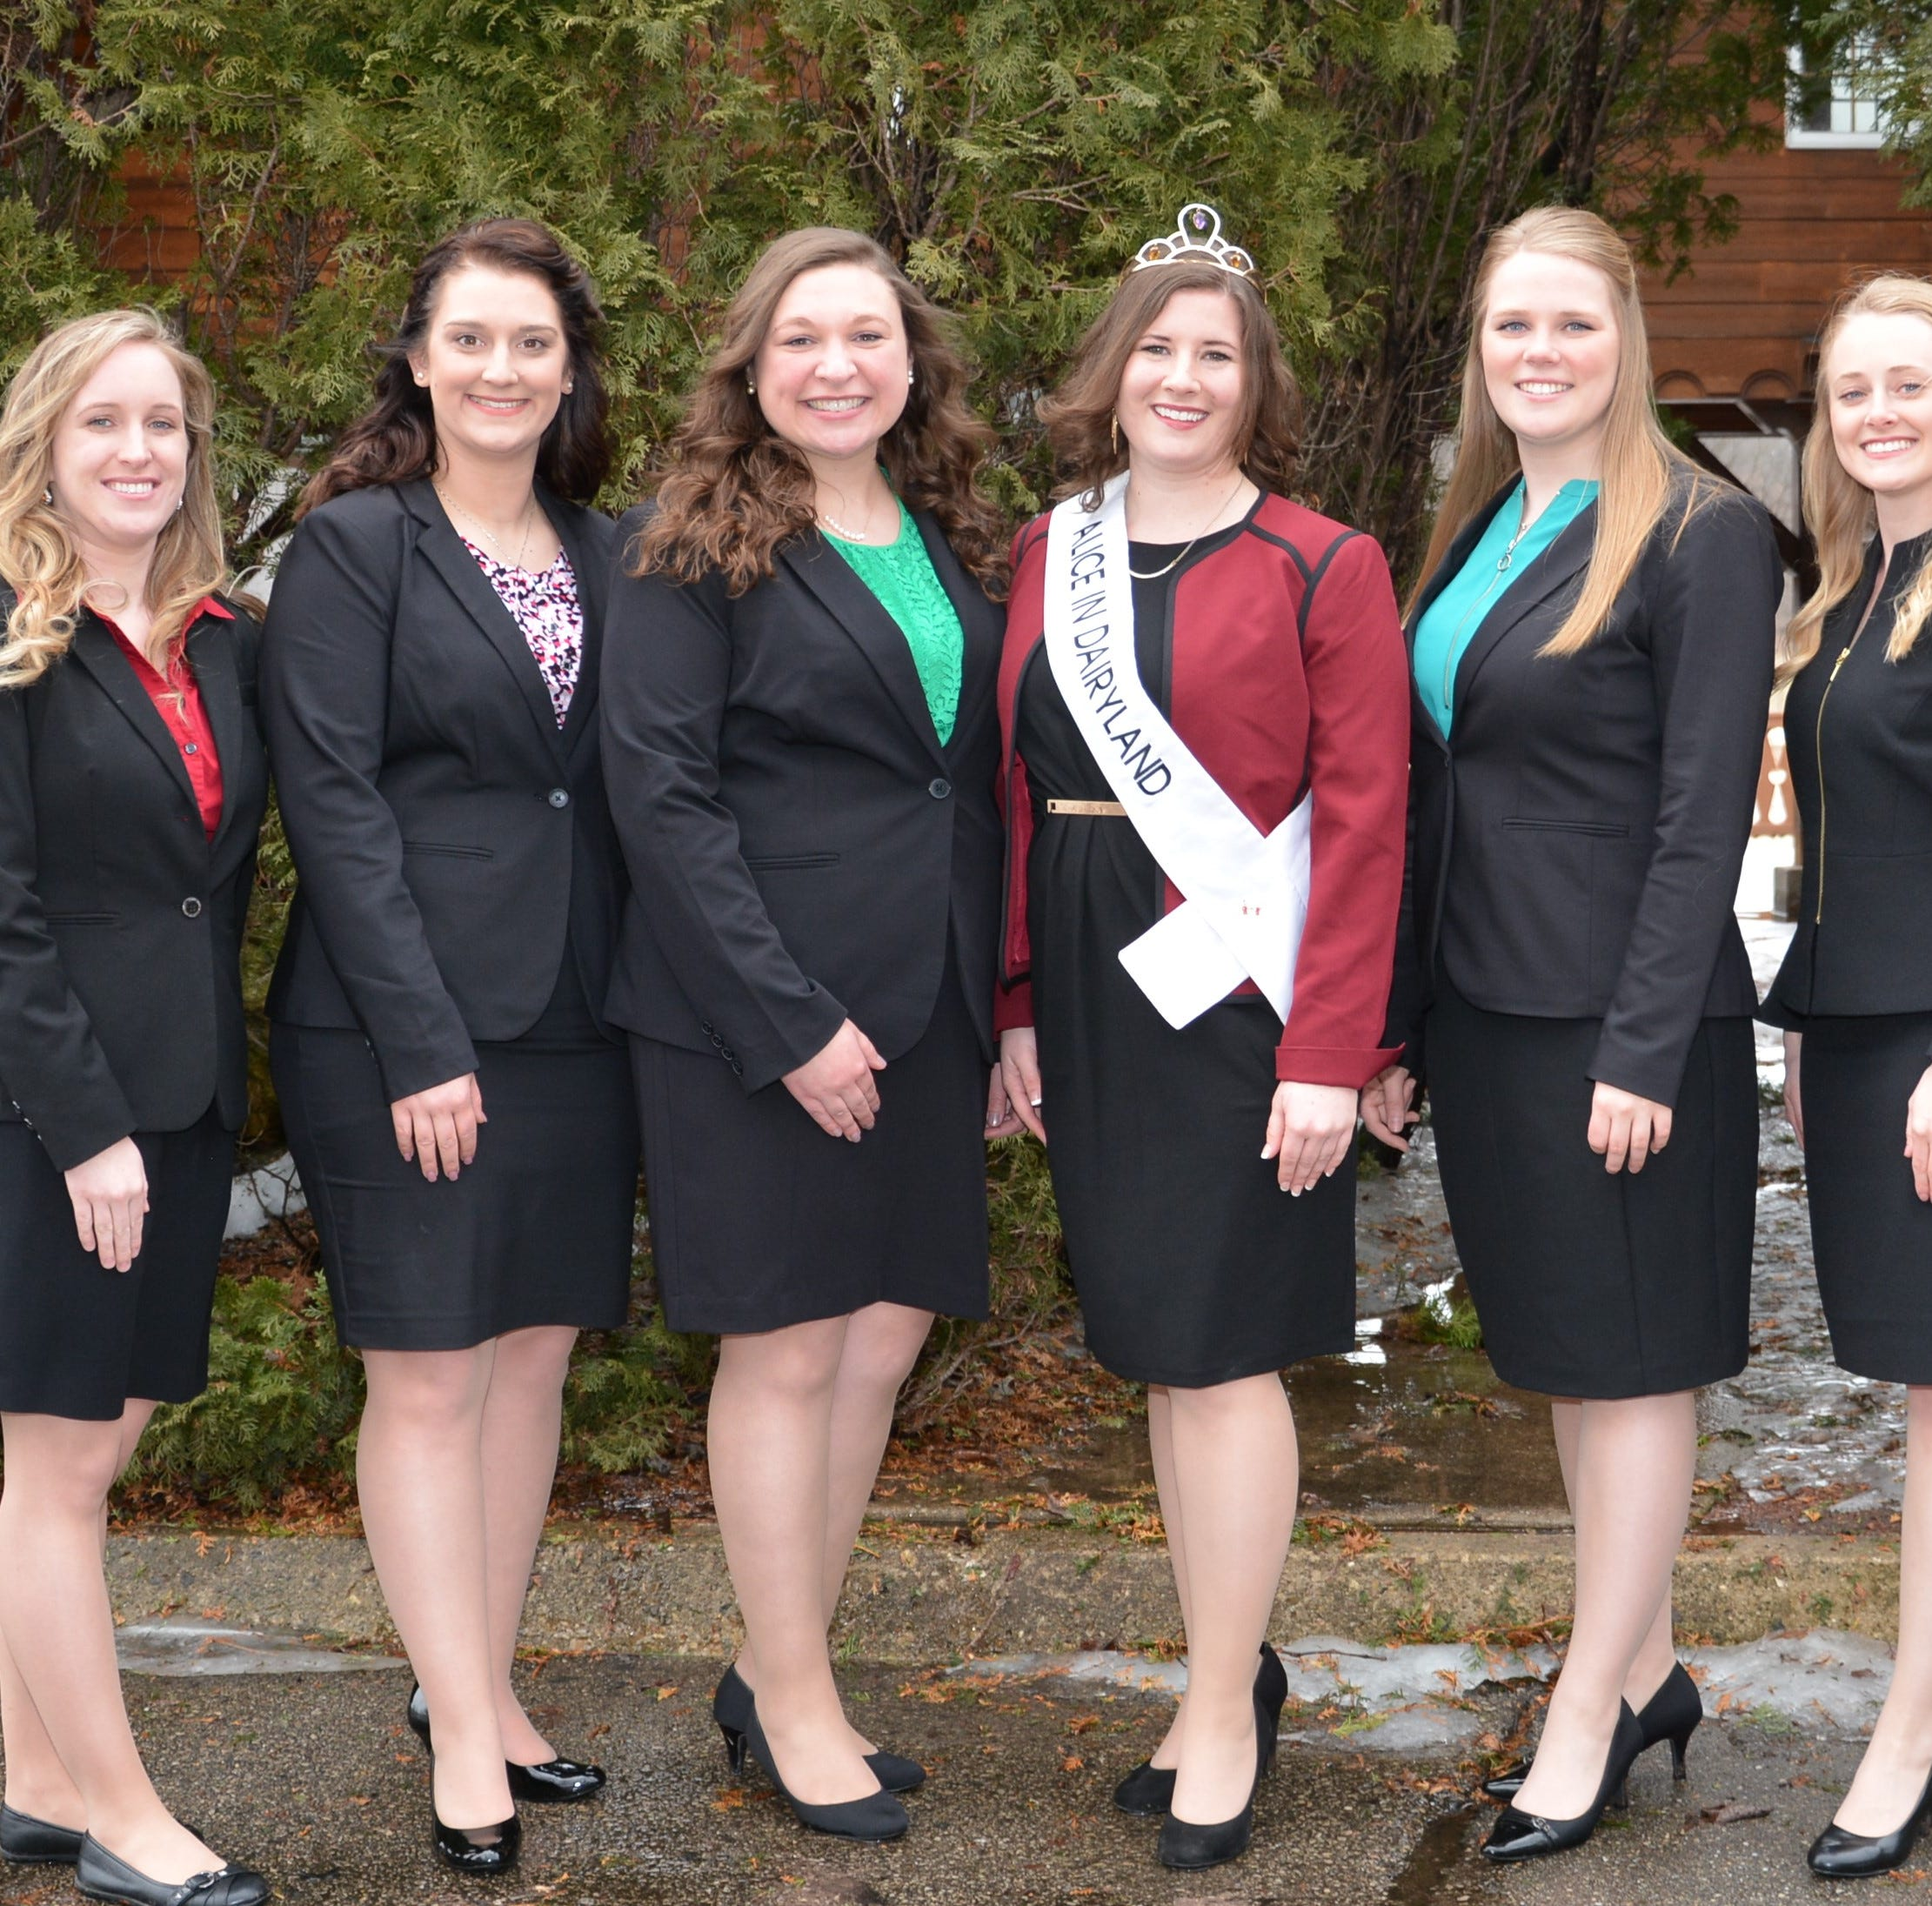 Alice in Dairyland candidates have heart for agriculture